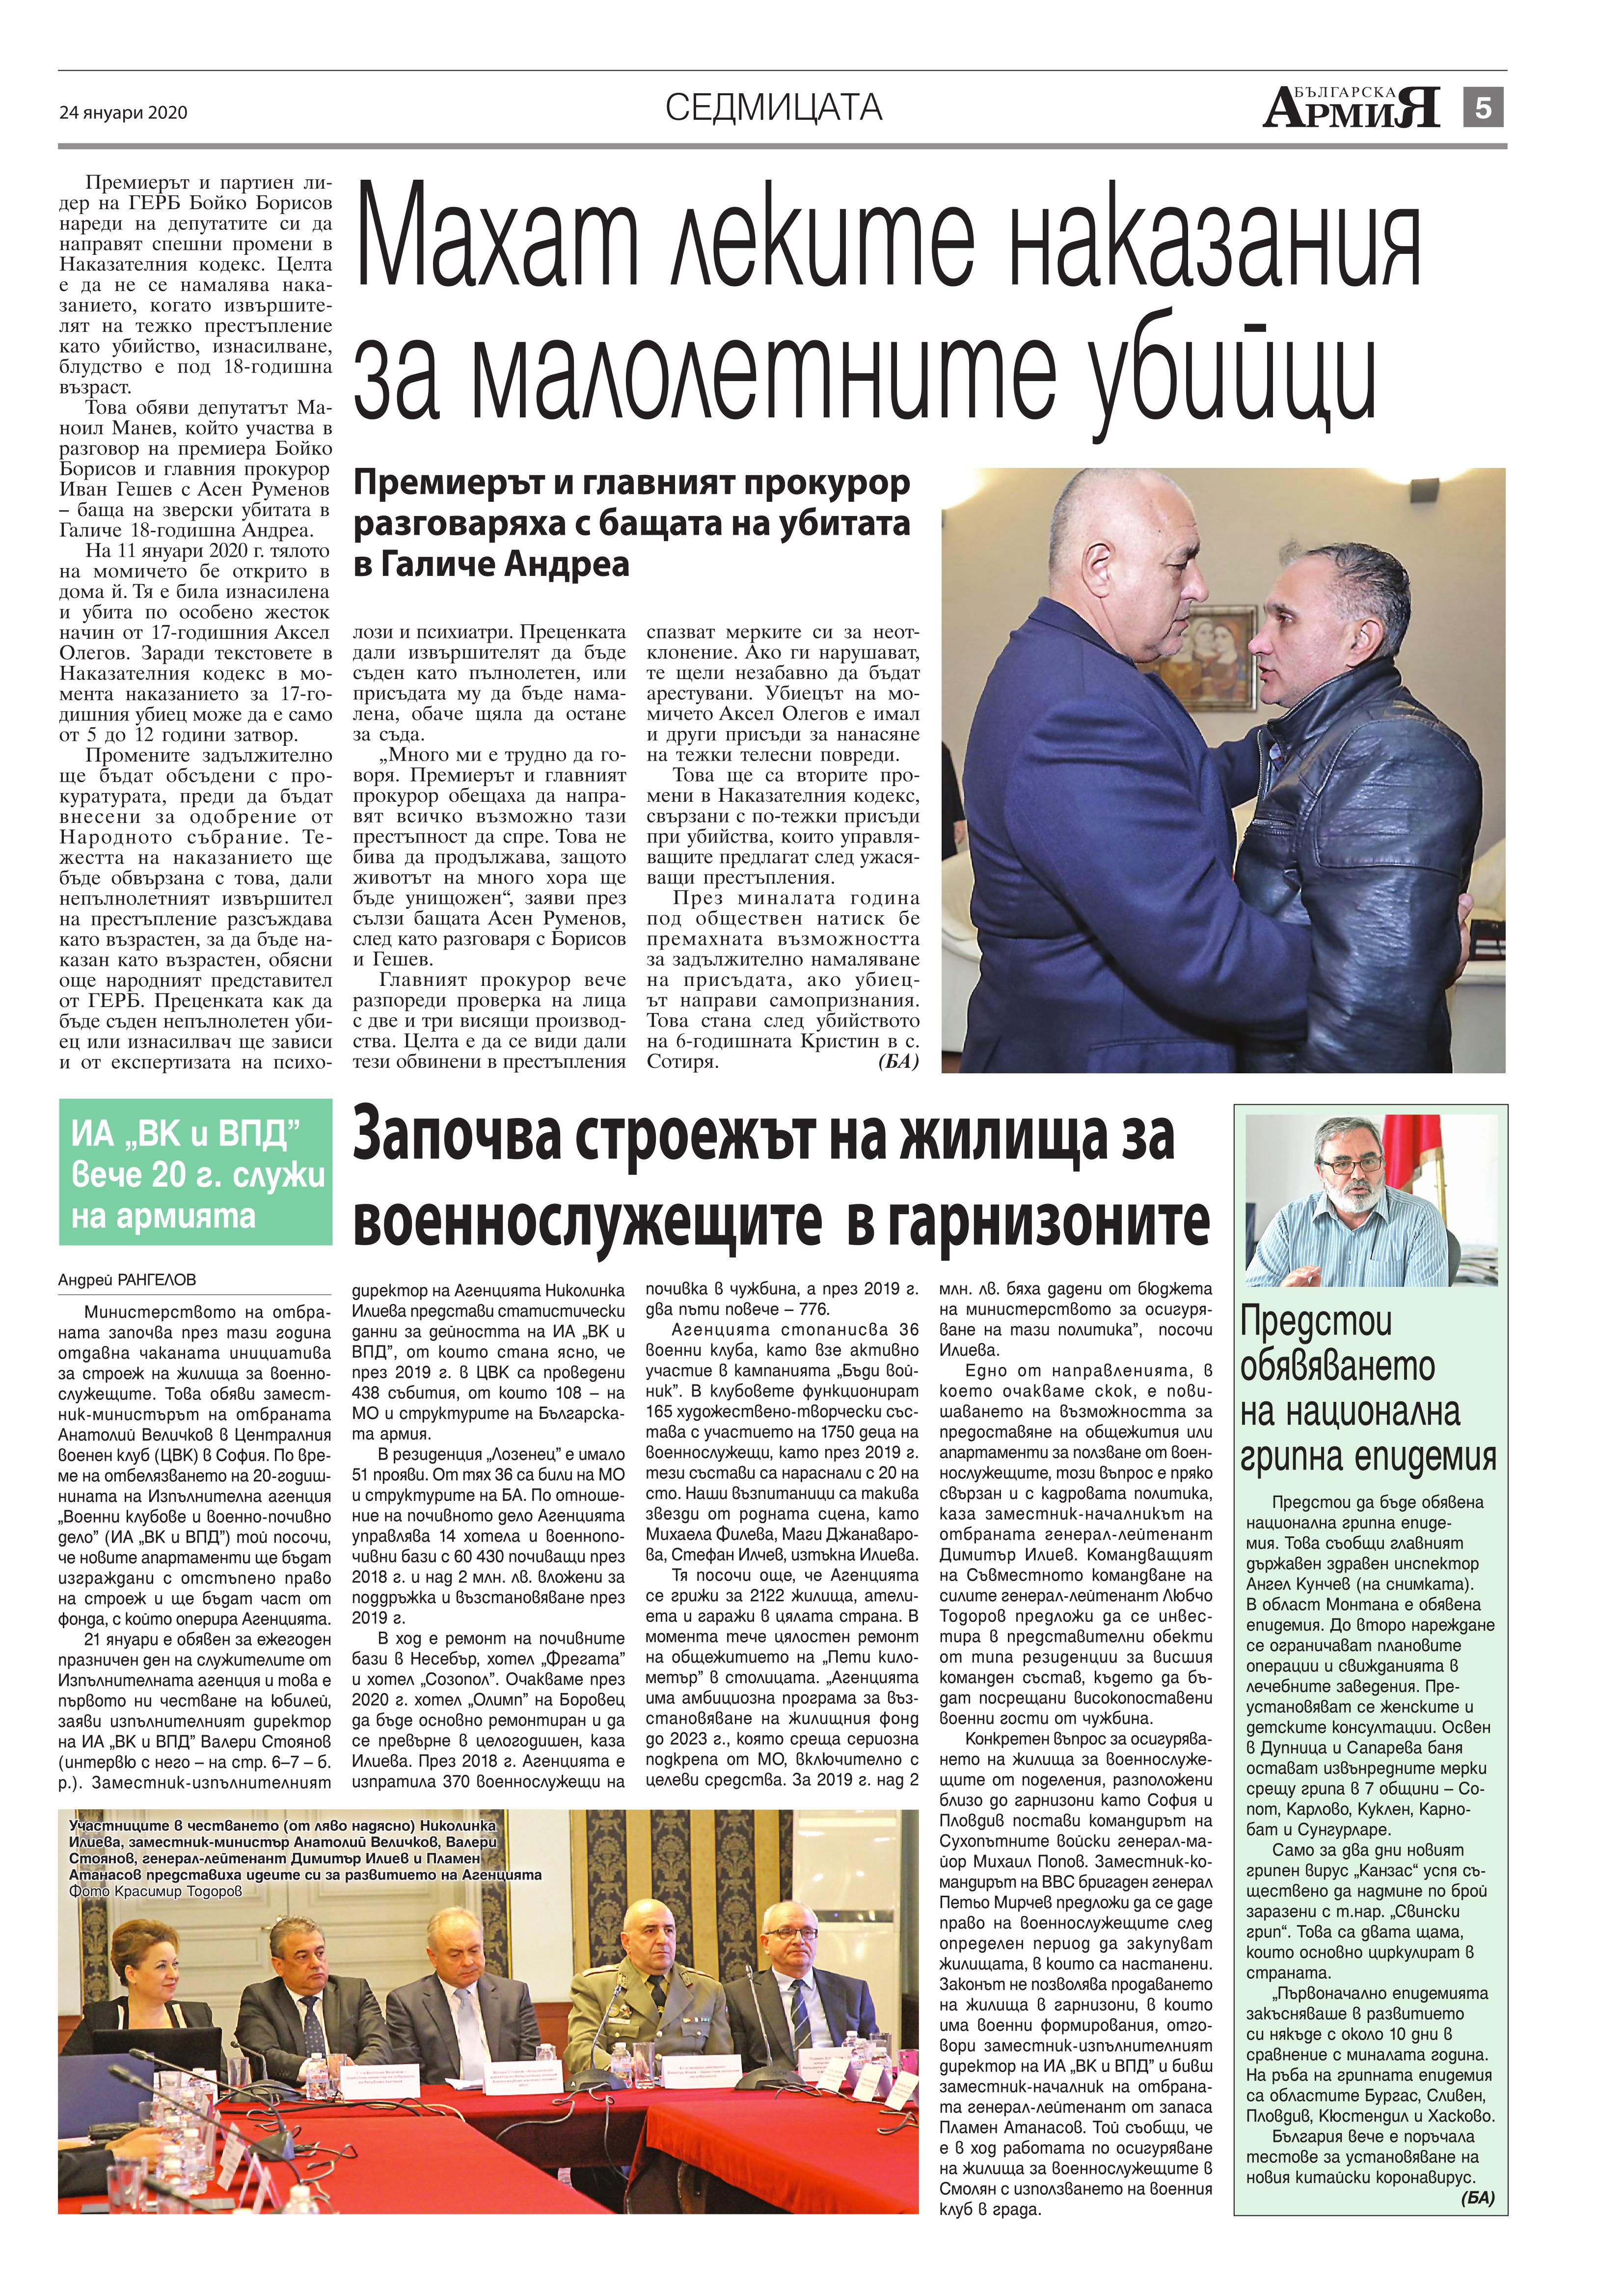 https://armymedia.bg/wp-content/uploads/2015/06/05.page1_-120.jpg